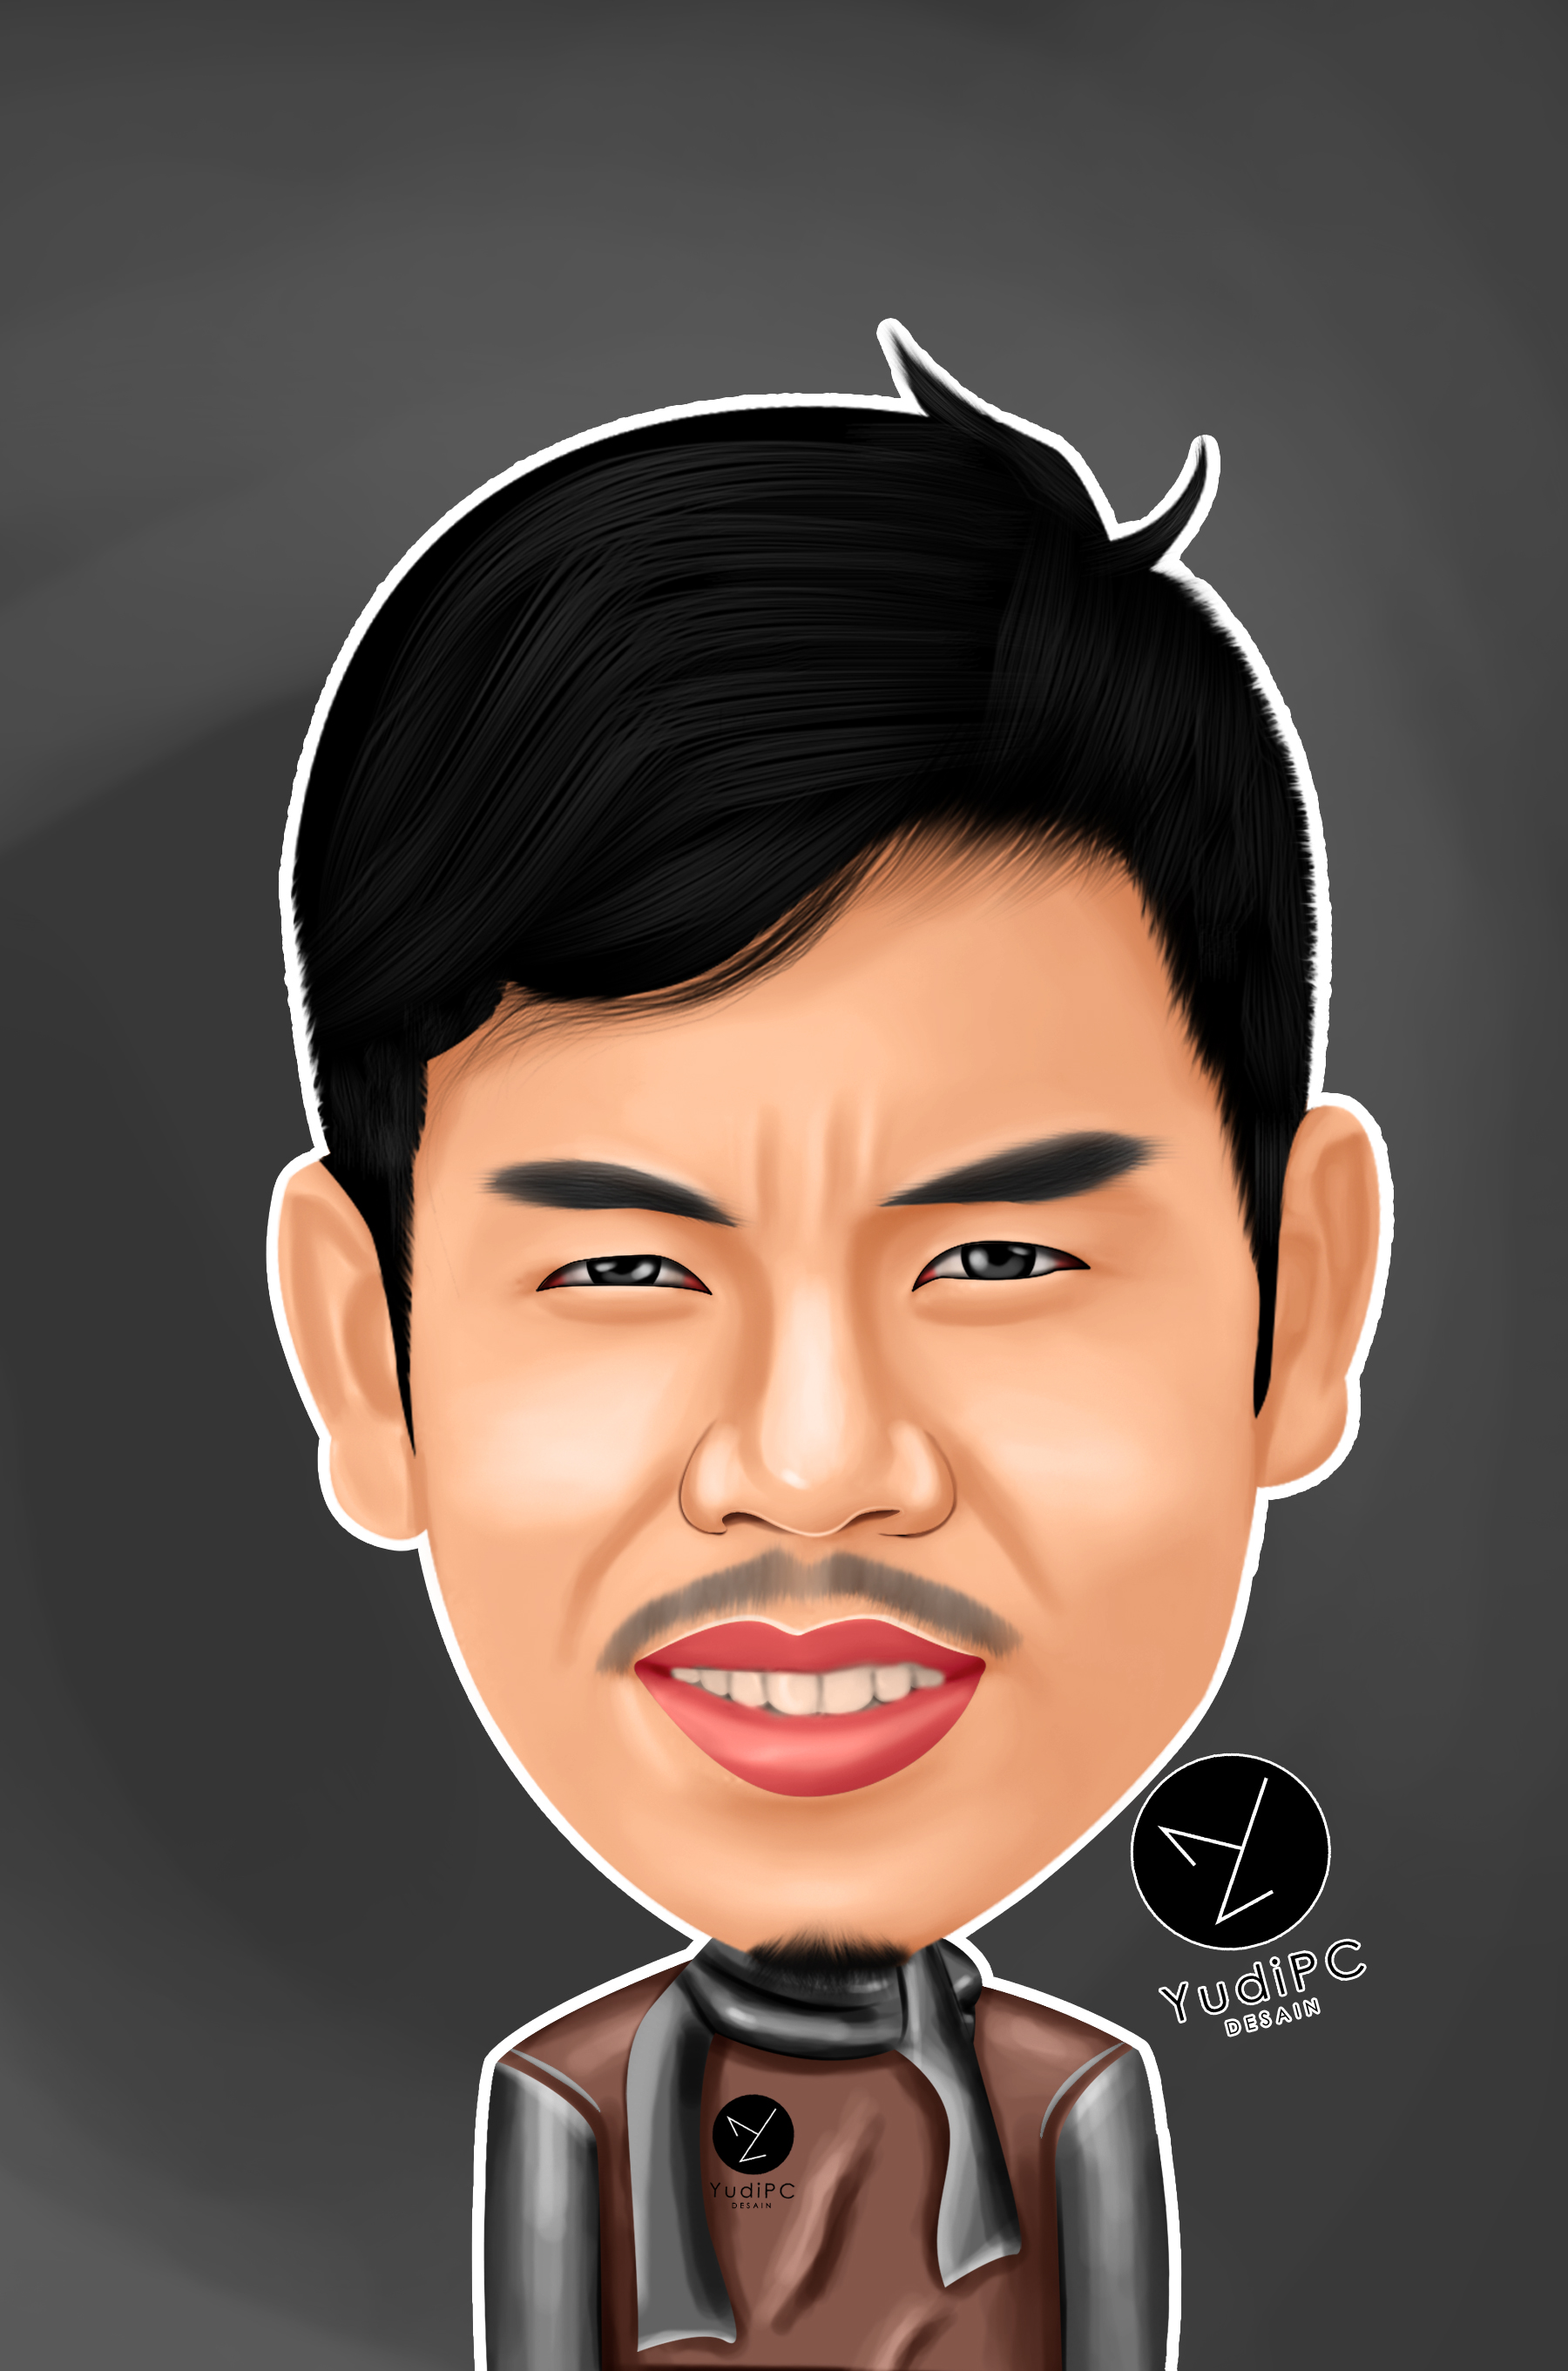 make your photo into digital caricature in my stlye